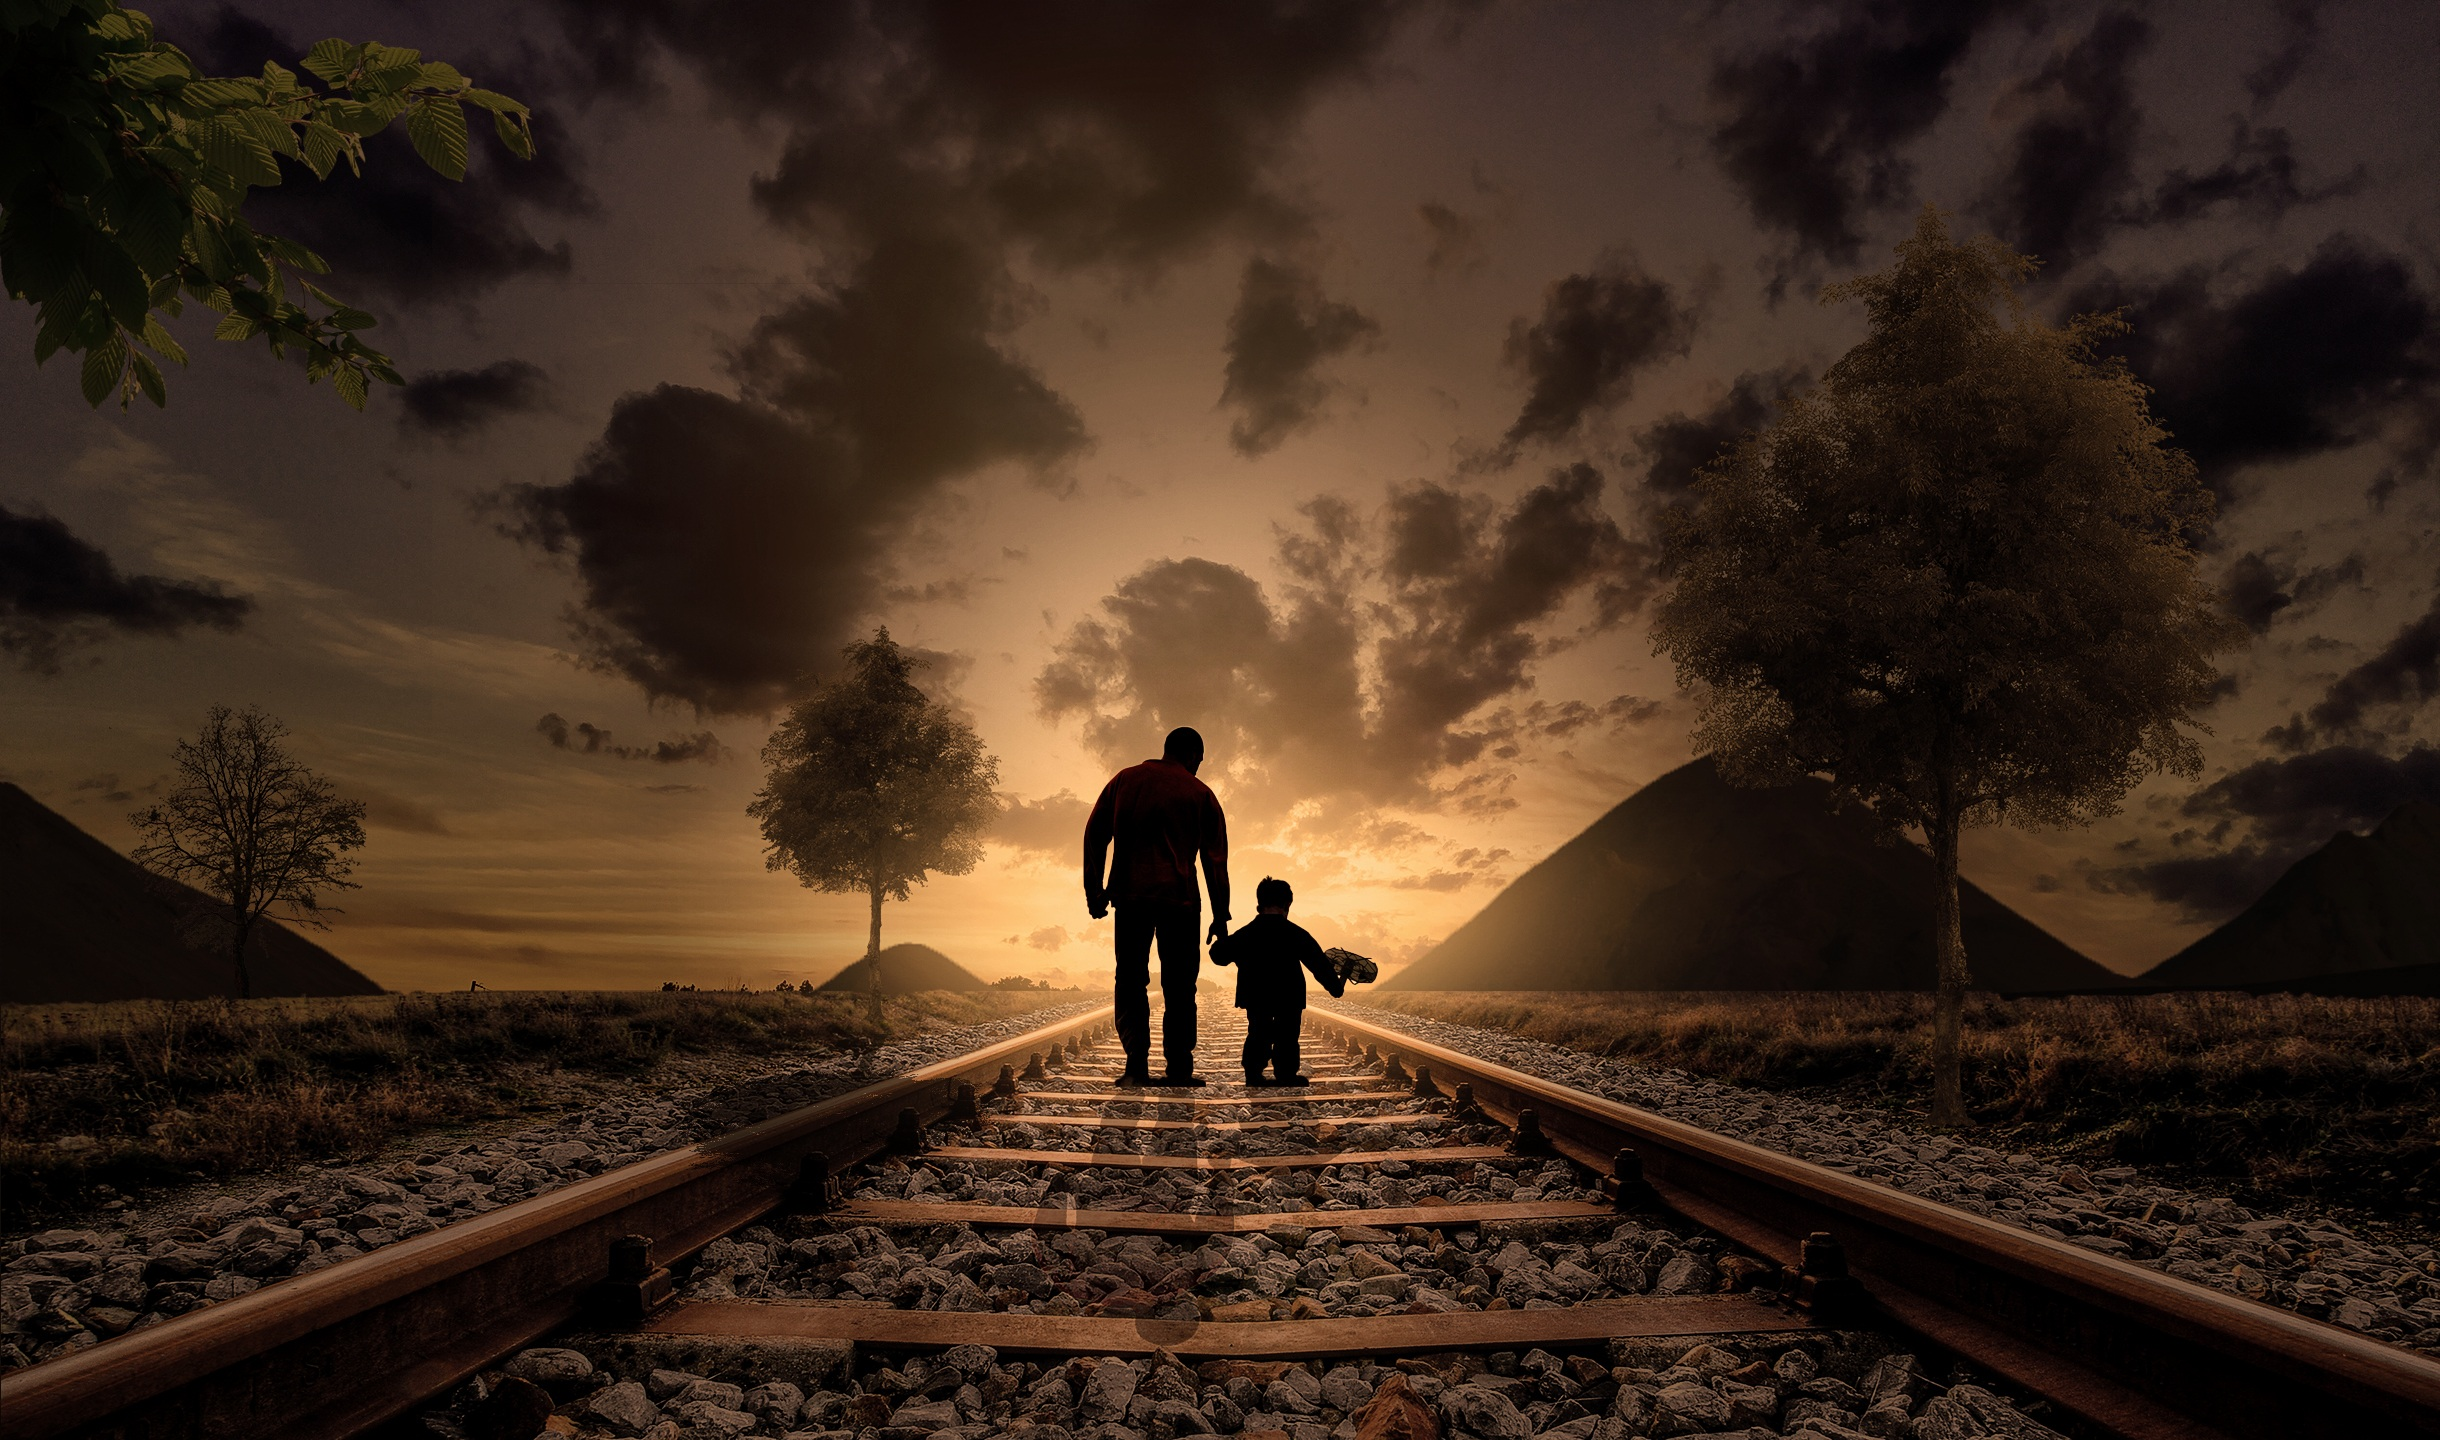 Father Son Walking Railraod Hd Photography 4k Wallpapers